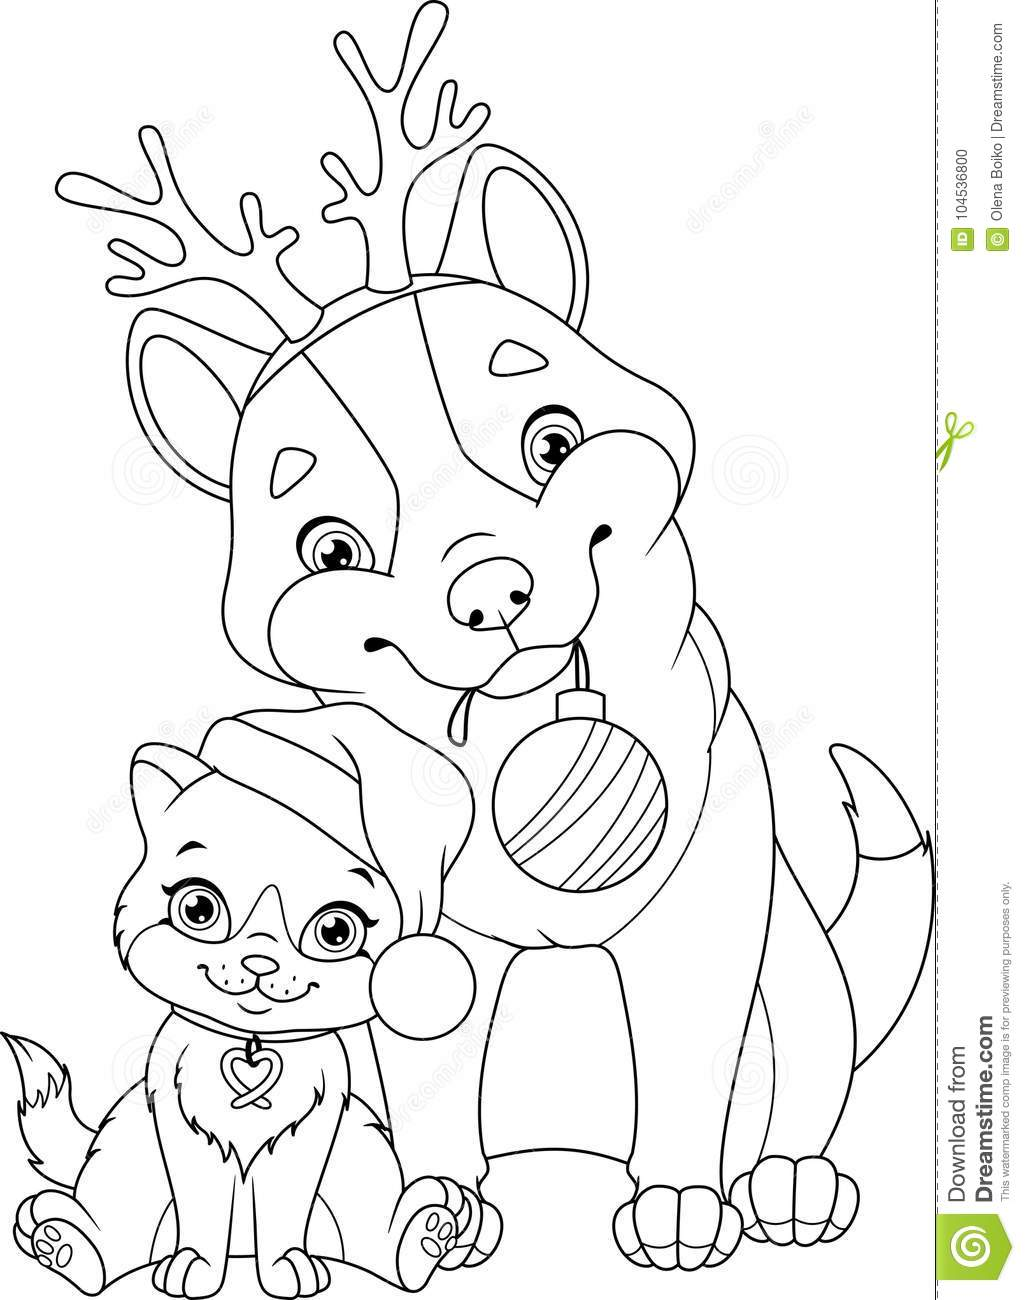 Christmas Coloring Pages With Dogs Dog Cat Page Stock Vector Illustration Of